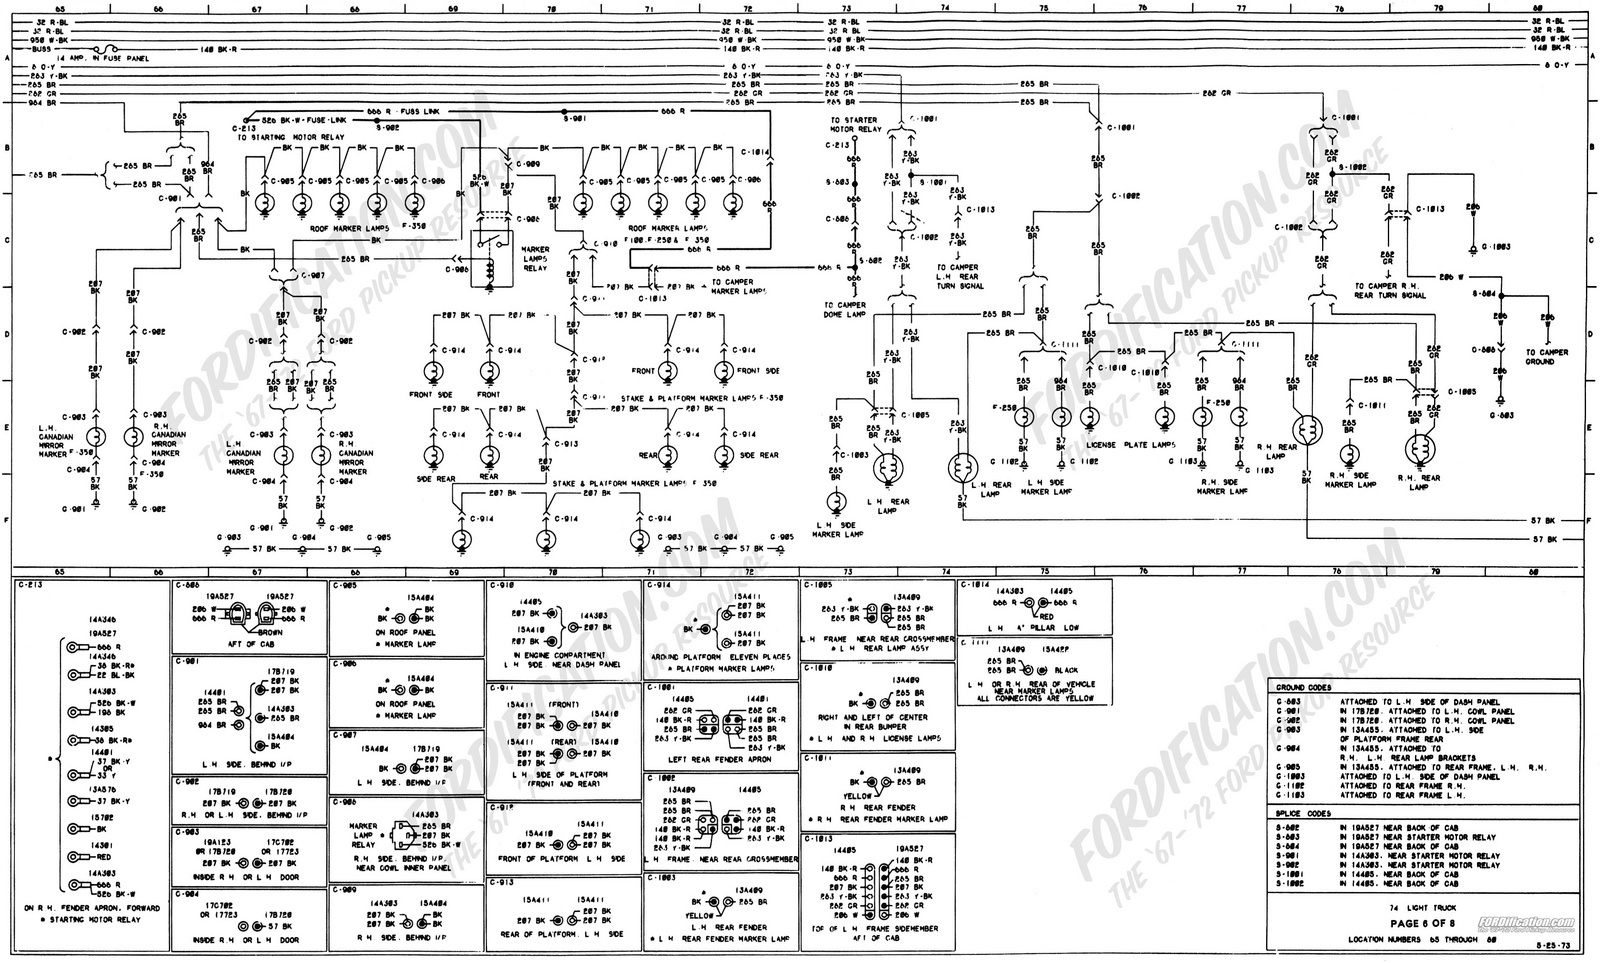 dc9e4 1983 ford bronco wiring diagram digital resources 86 chevy starter solenoid wiring